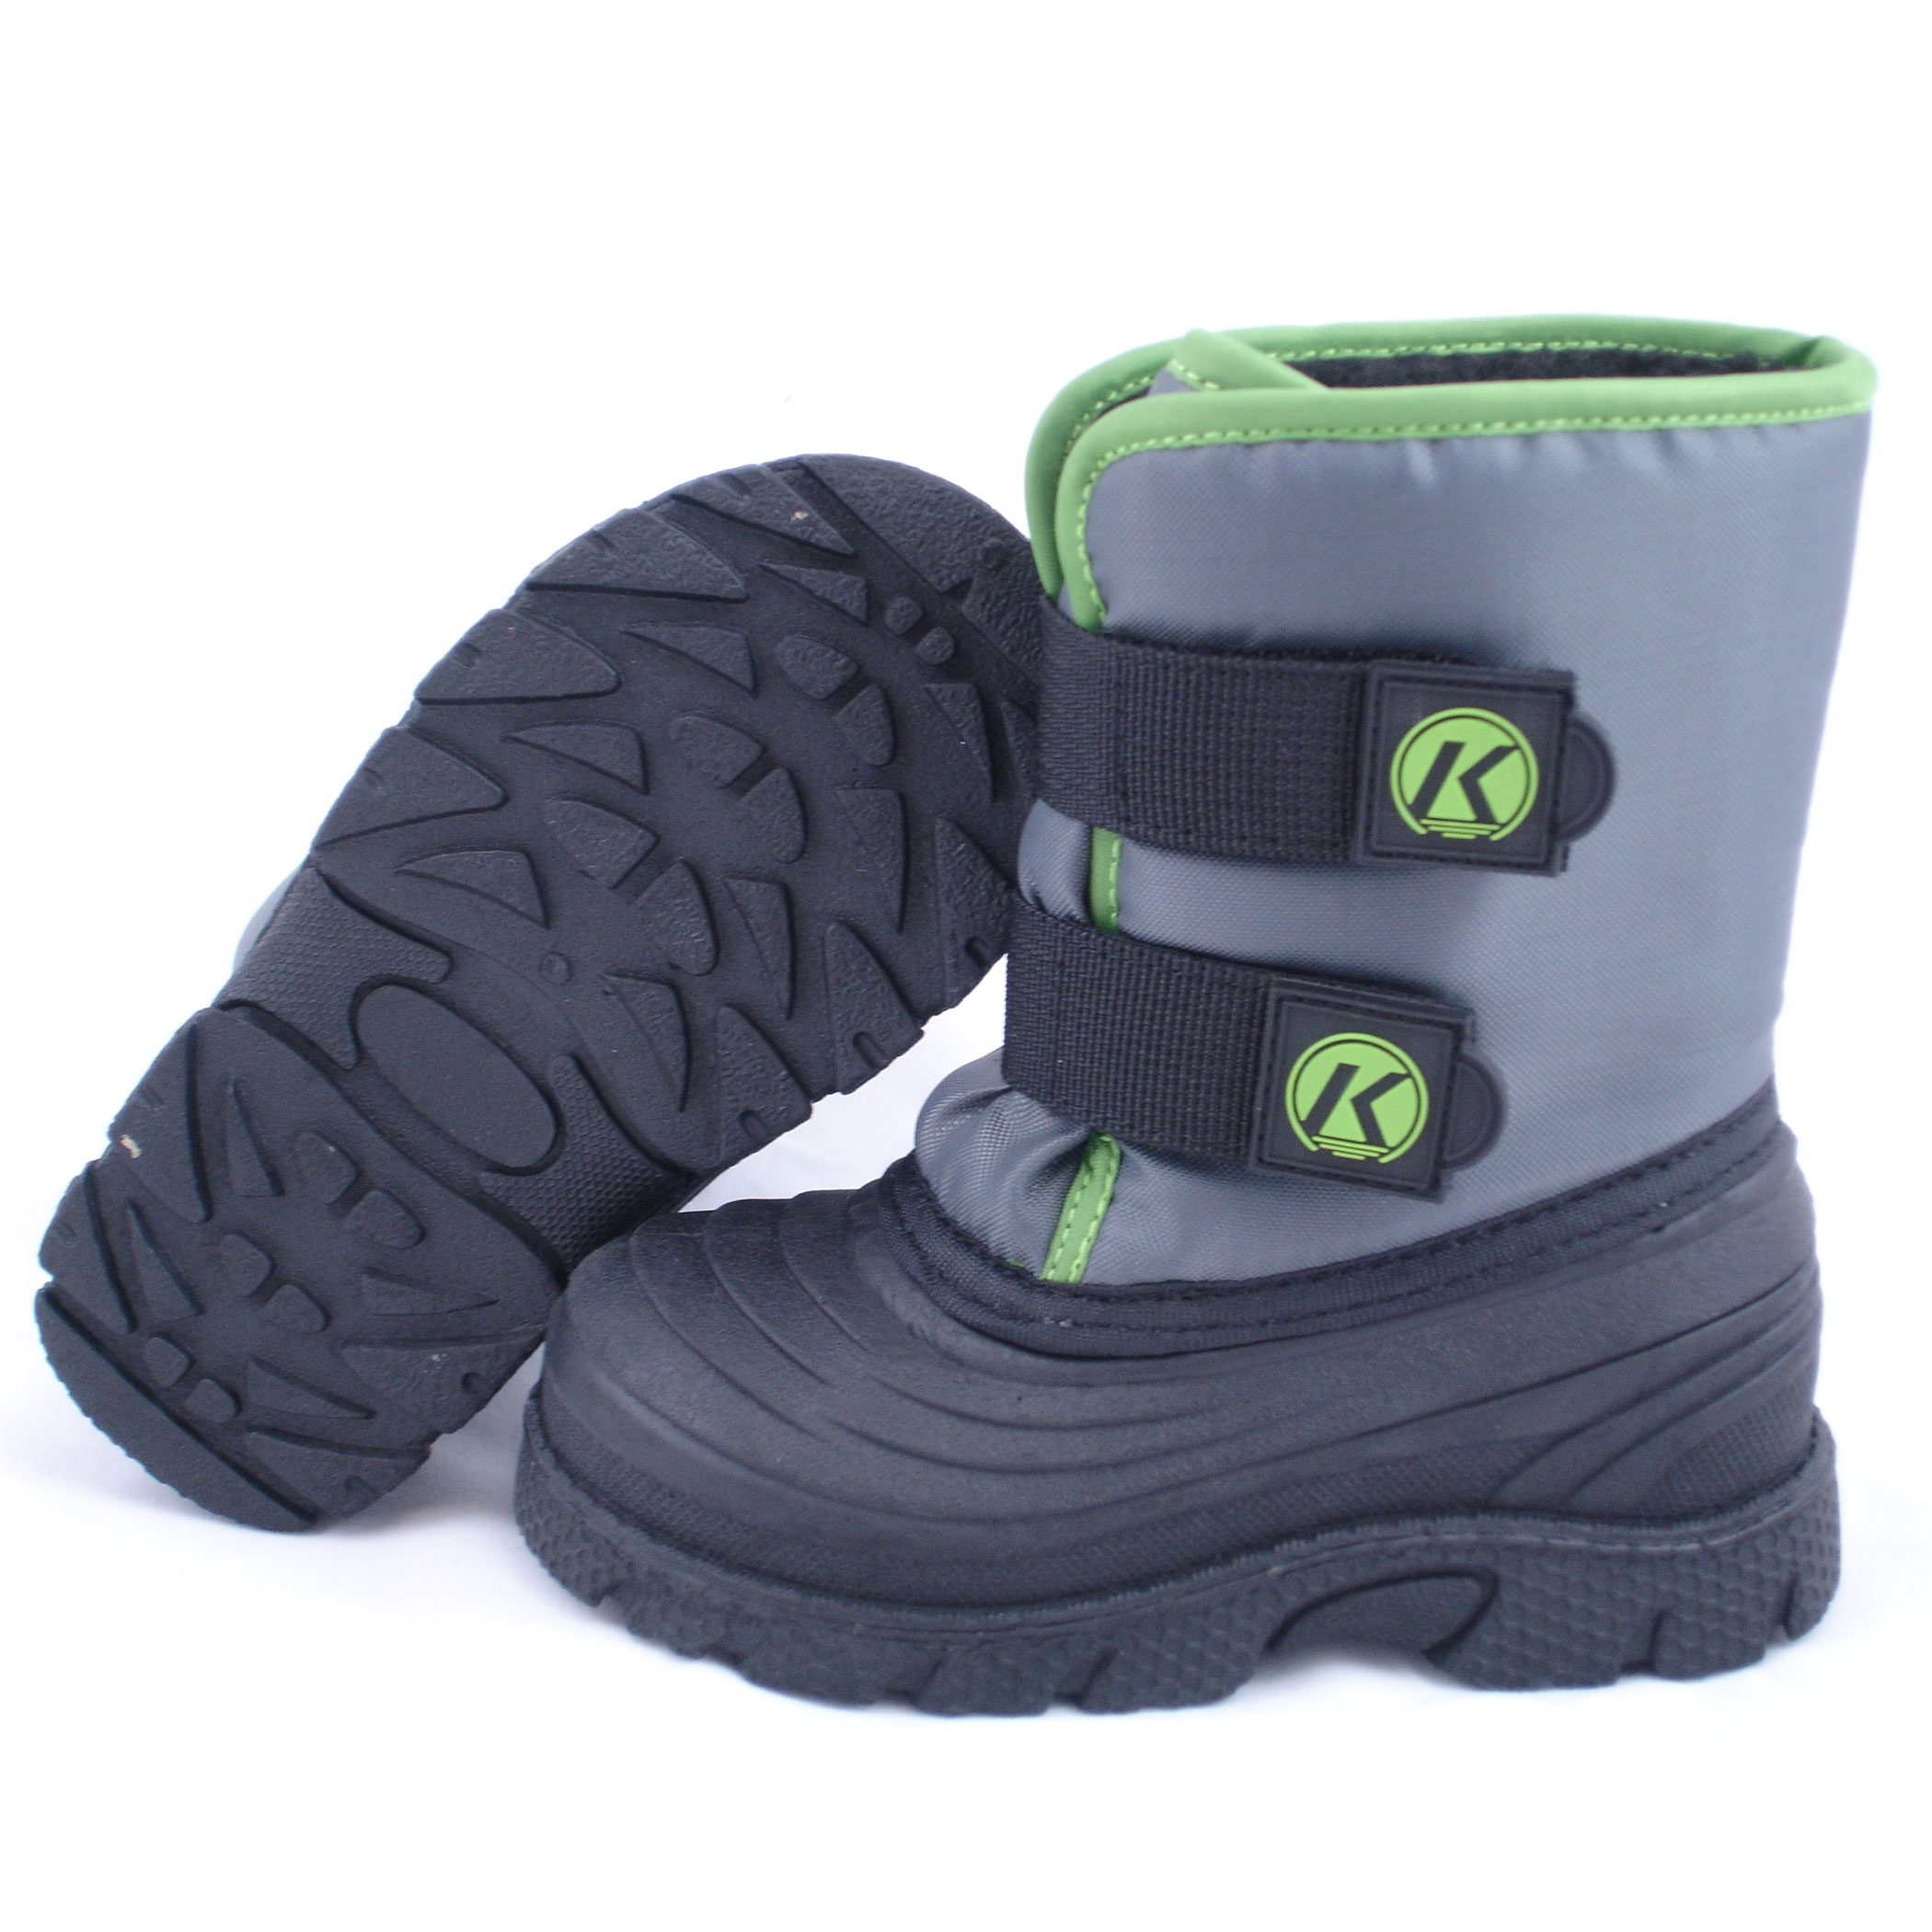 Childrens Snow Boots xPYSRqSD